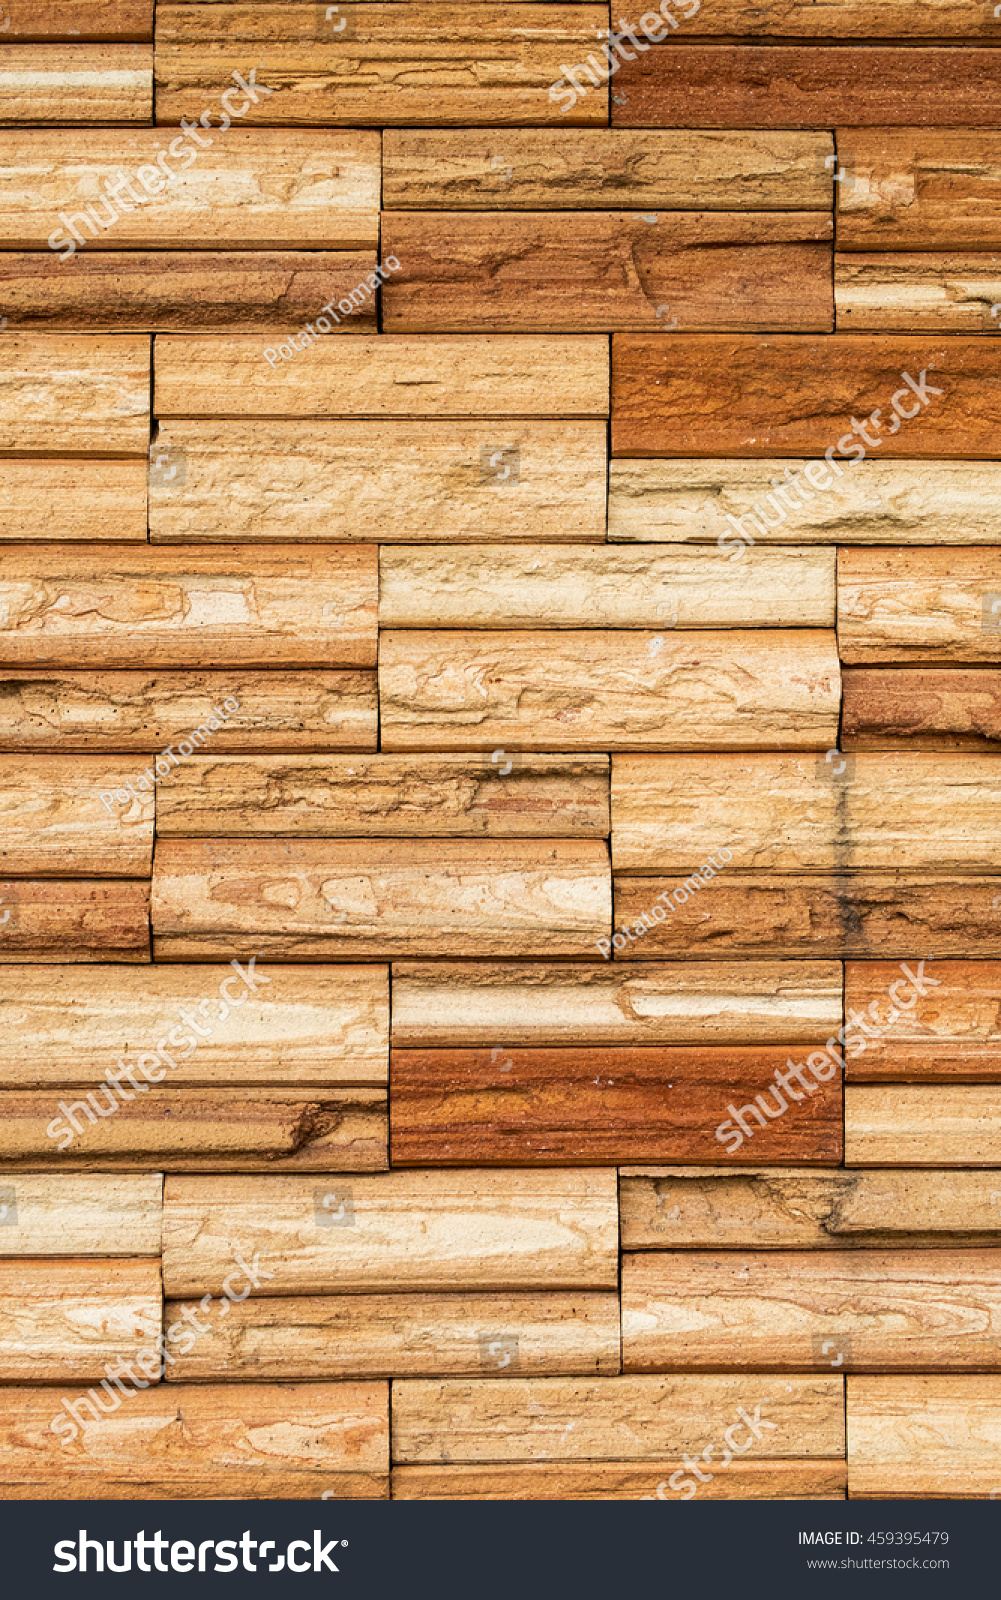 woven bamboo surface, background   EZ Canvas